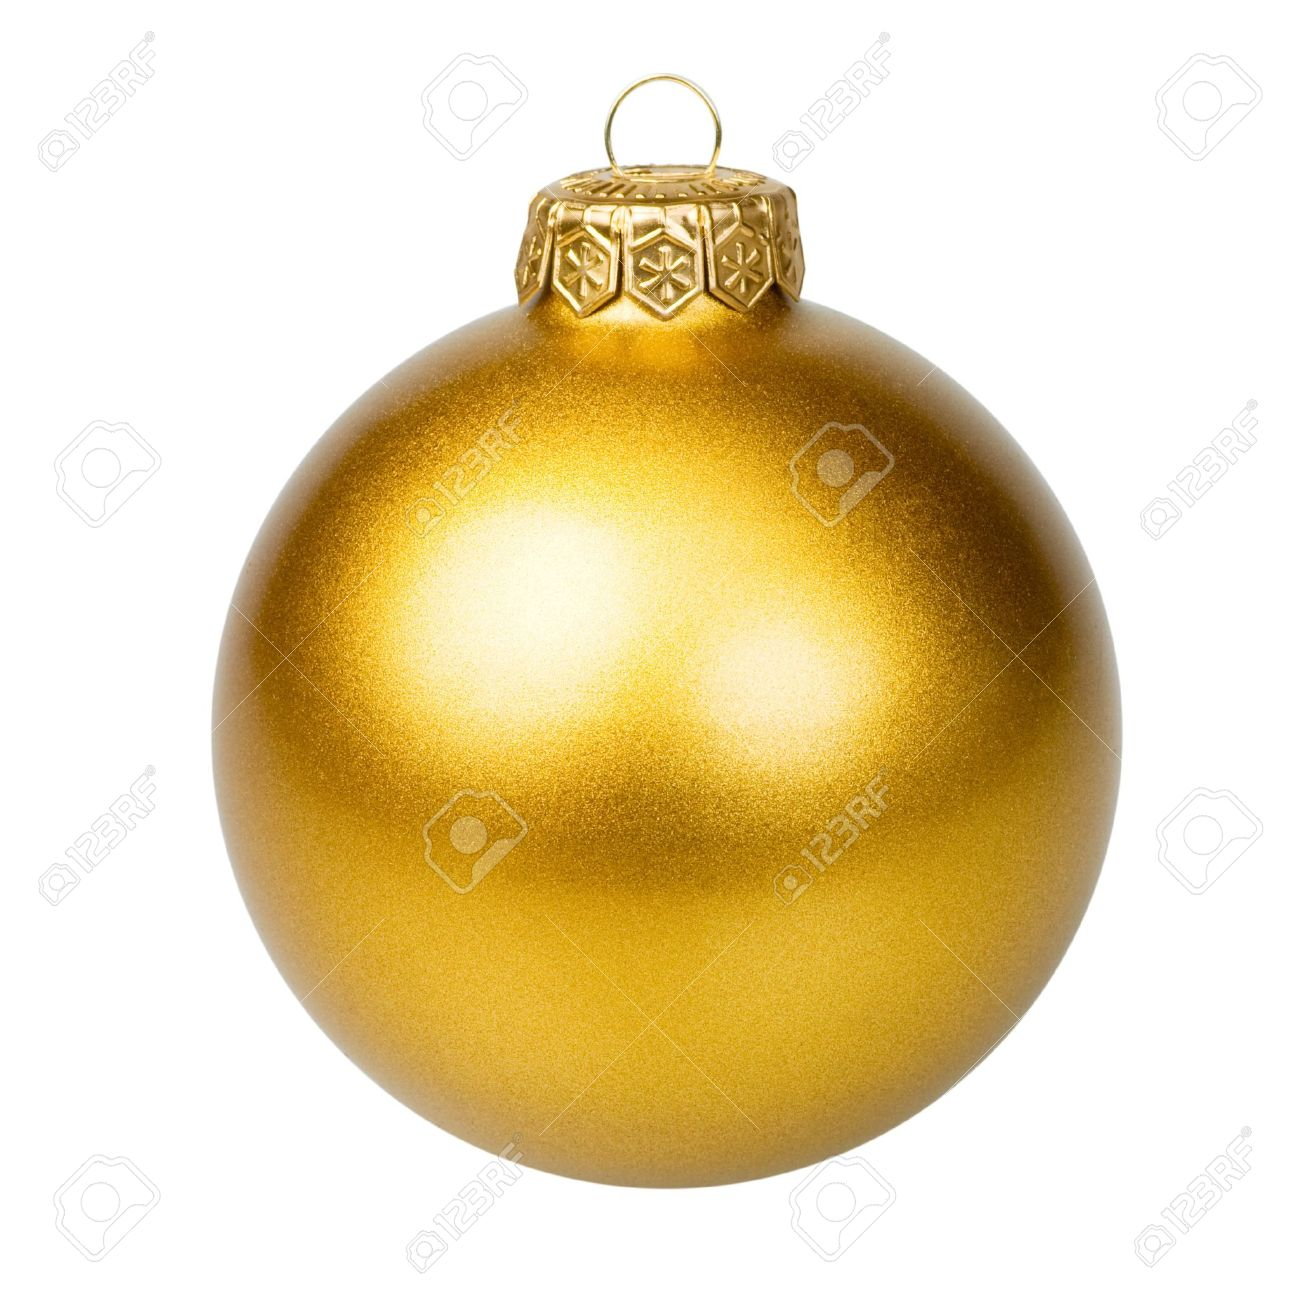 Golden Christmas Bauble On White Background Stock Photo, Picture ...